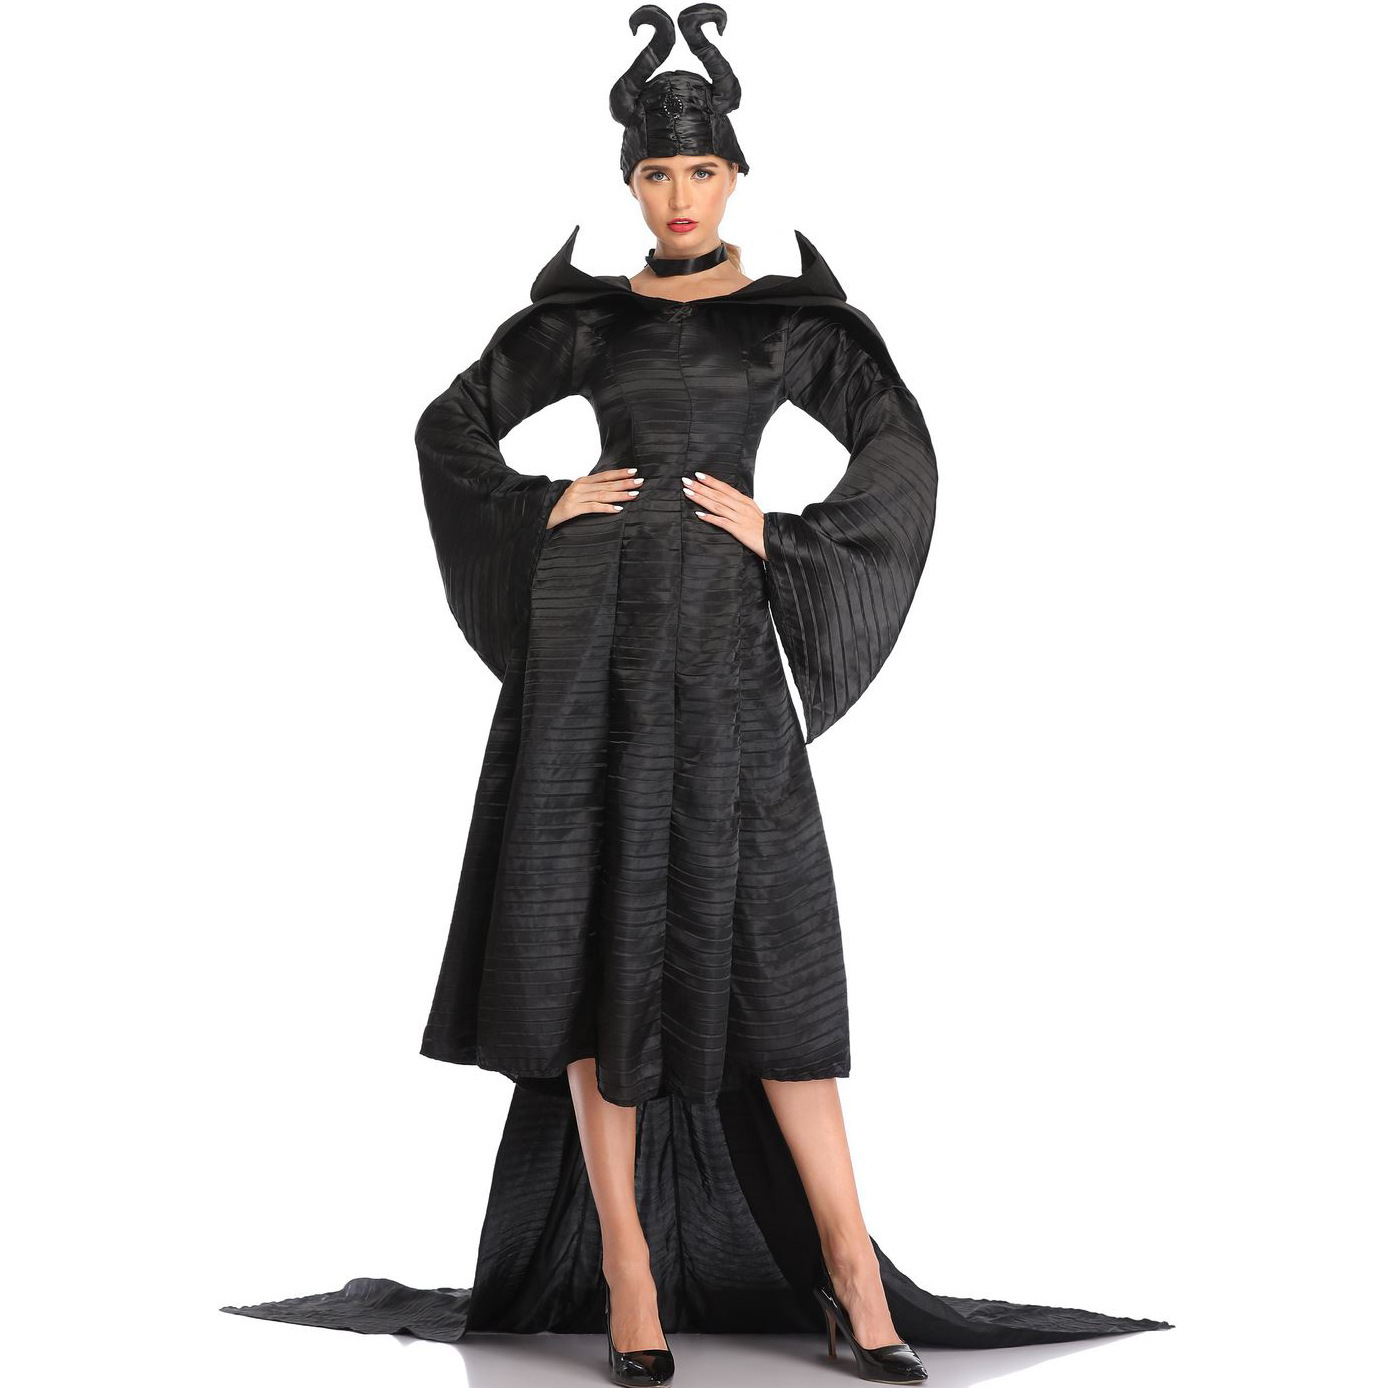 Cosplay costume for sleeping Witches